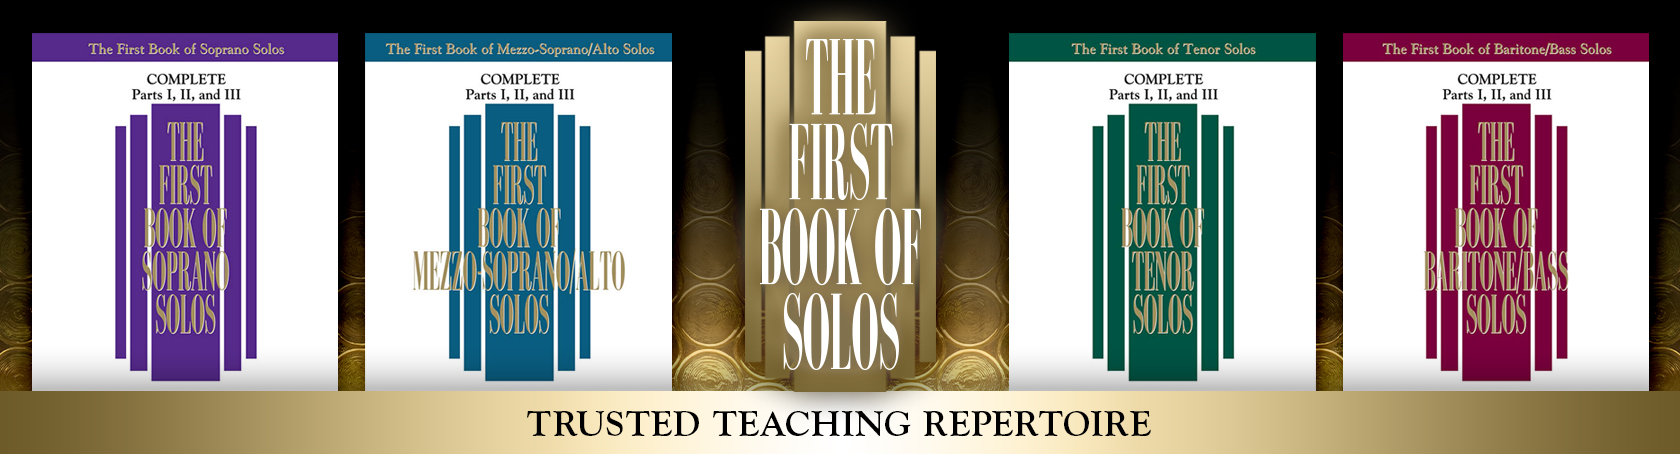 First Book - The First Book of Solos